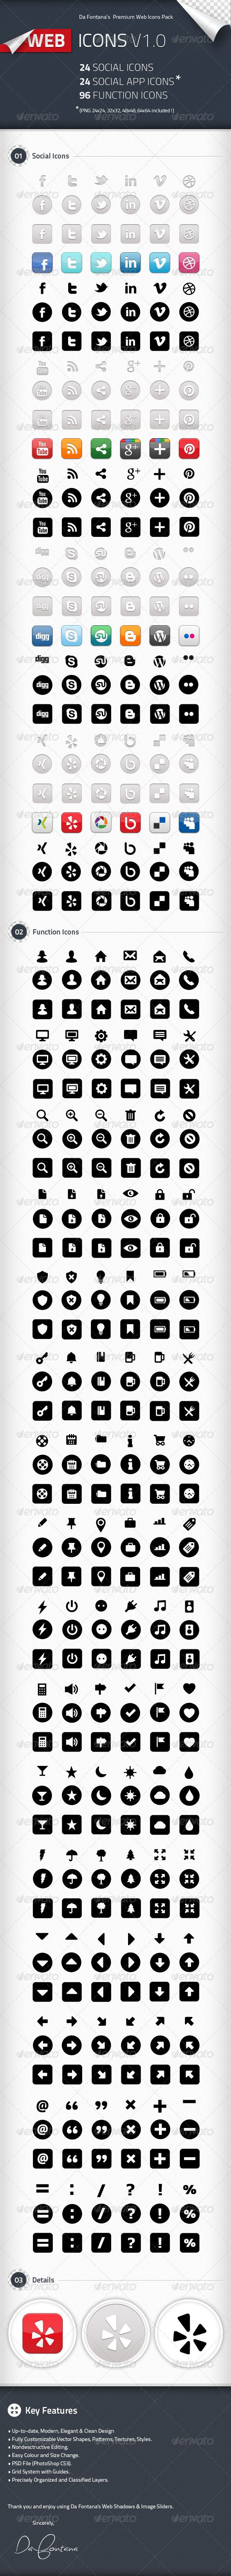 Social Icons, Social App Icons, Function Icons — Photoshop PSD #clean #vector • Available here → https://graphicriver.net/item/social-icons-social-app-icons-function-icons/2276501?ref=pxcr